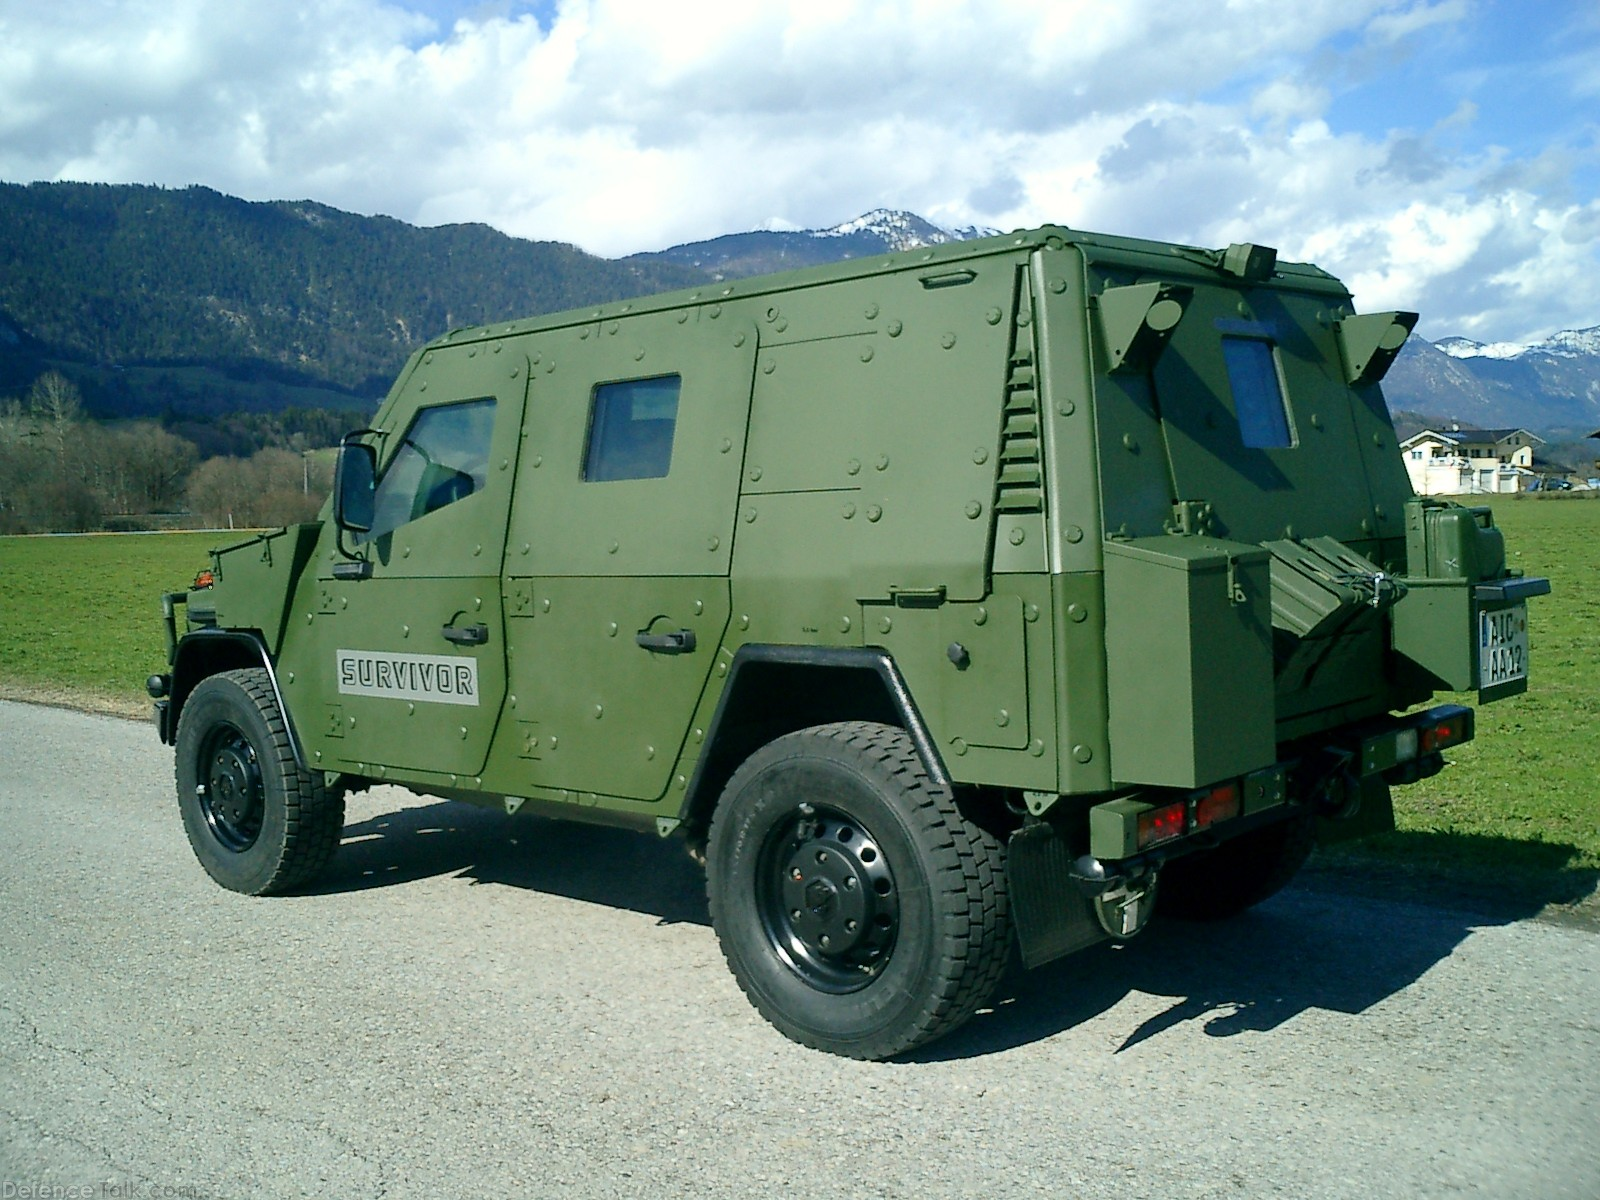 Achleitner range of light tactical vehicles